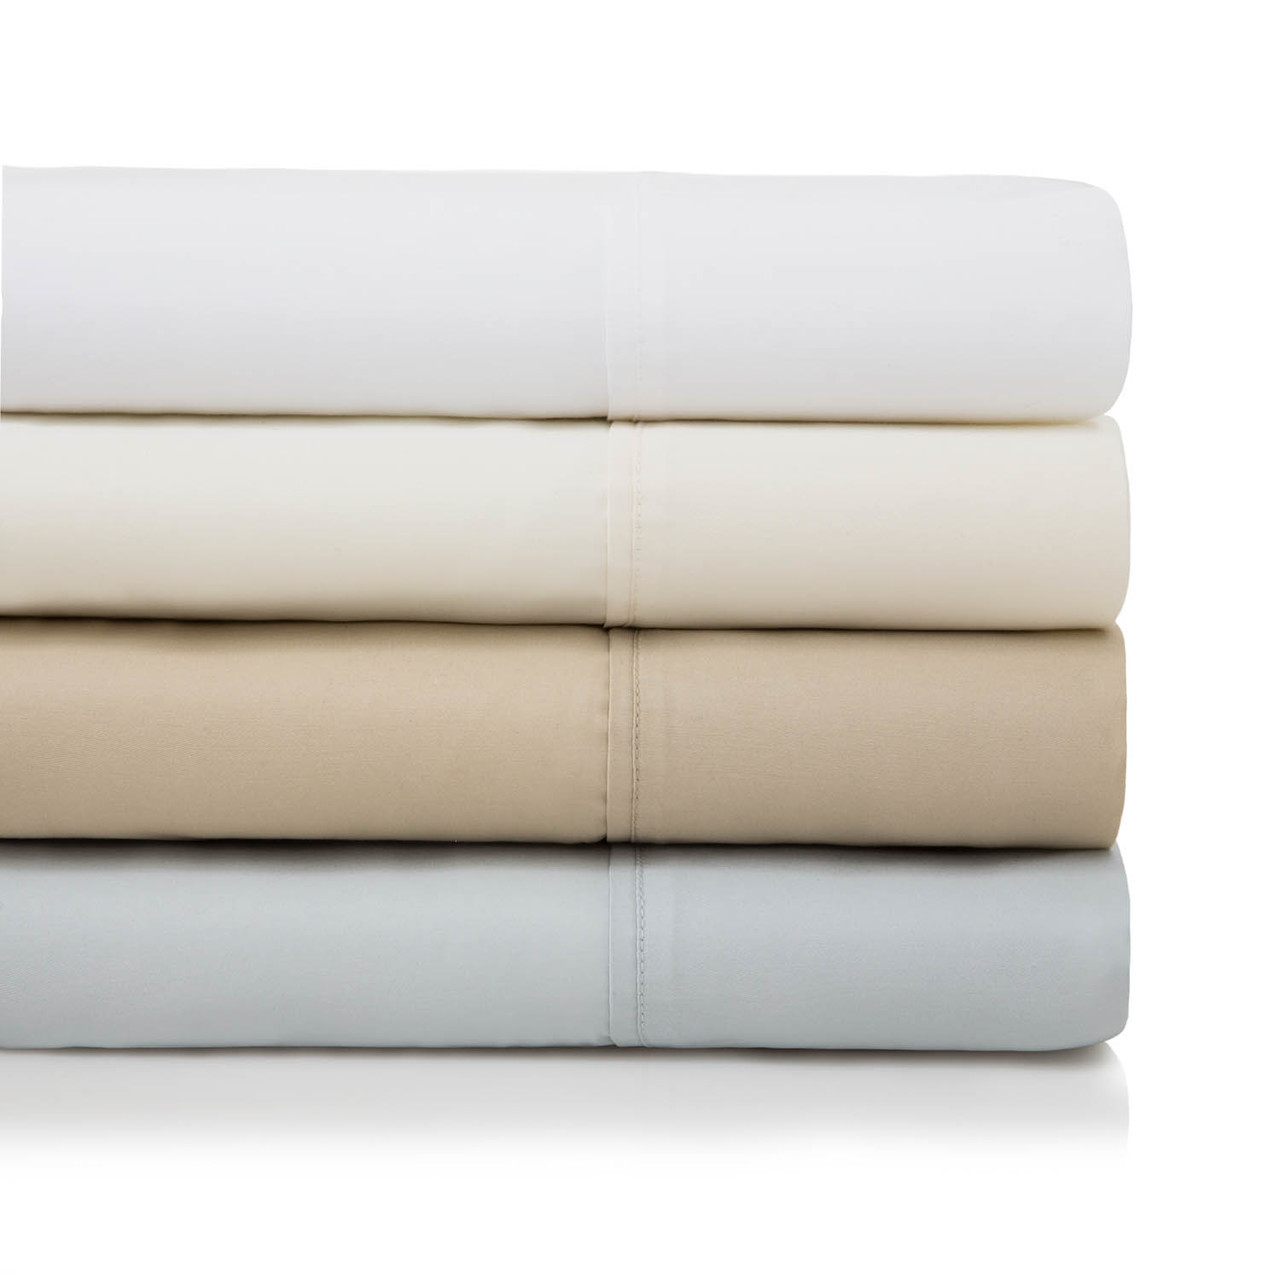 Malouf 600 Thread Count Cotton Blend 2